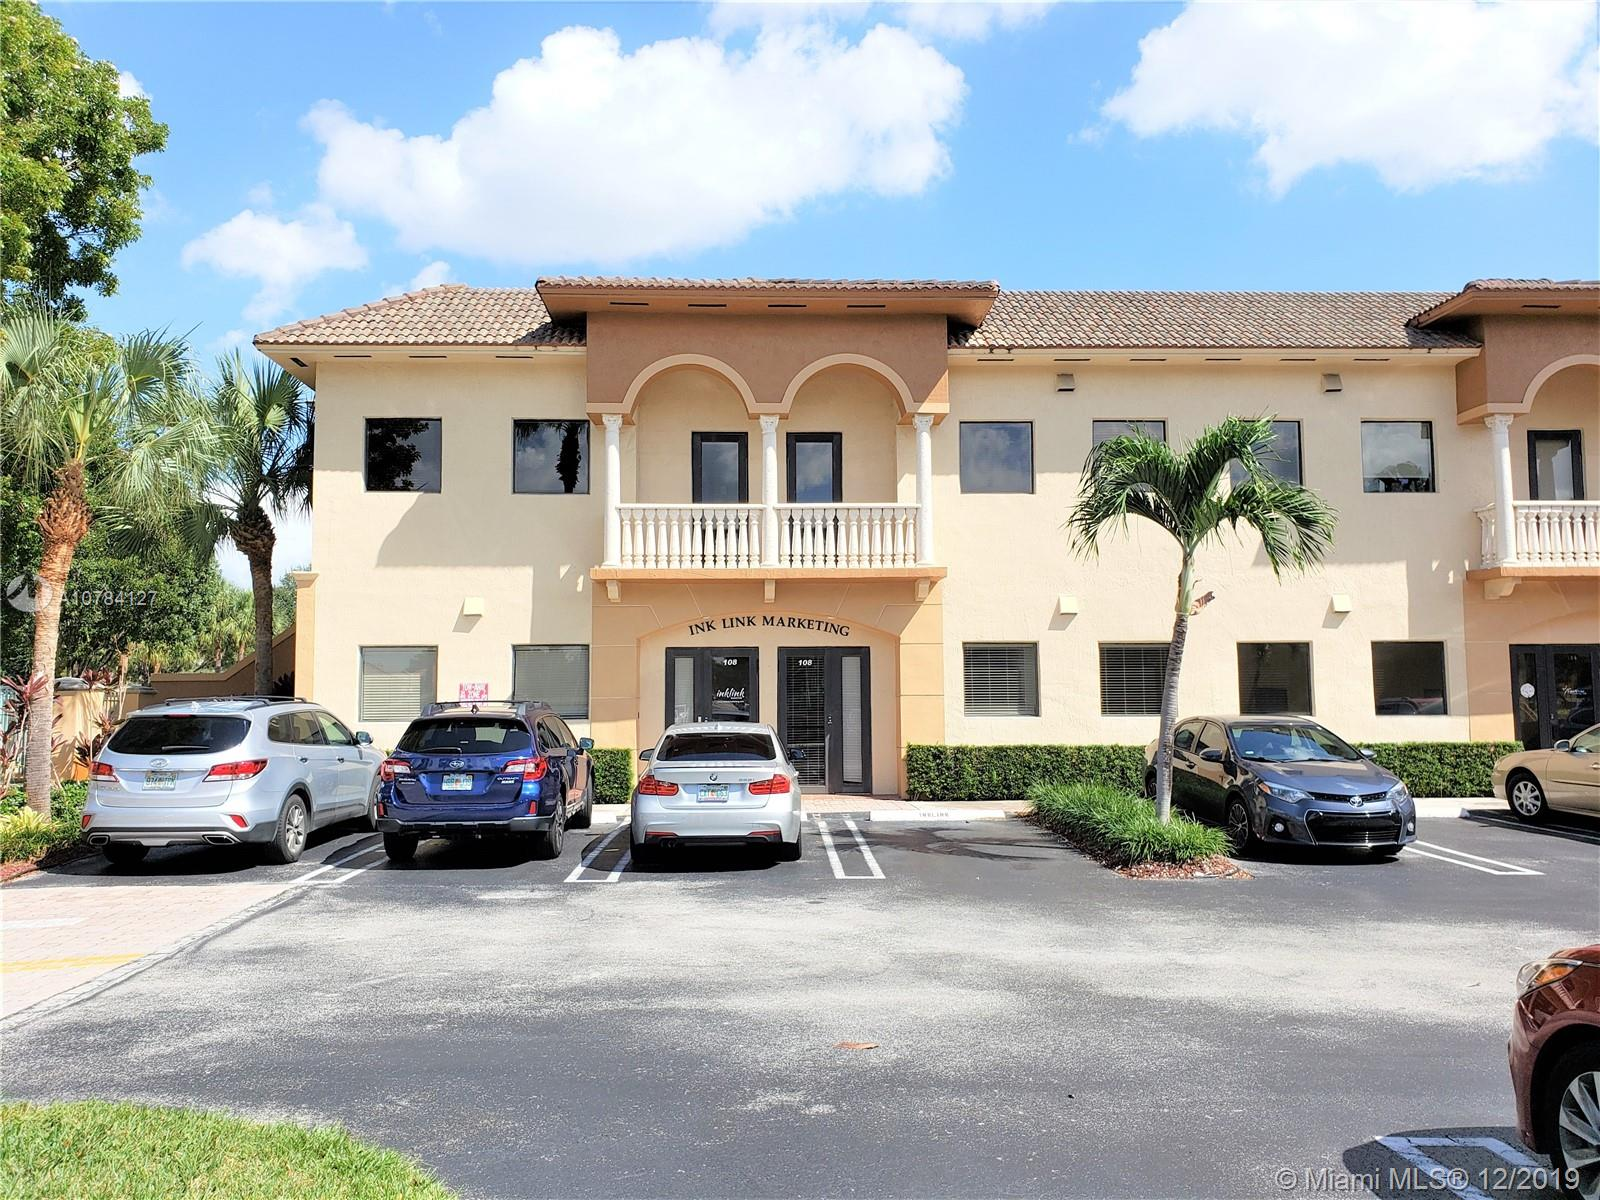 7950 NW 155th St Unit 101, Miami Lakes, Florida 33016